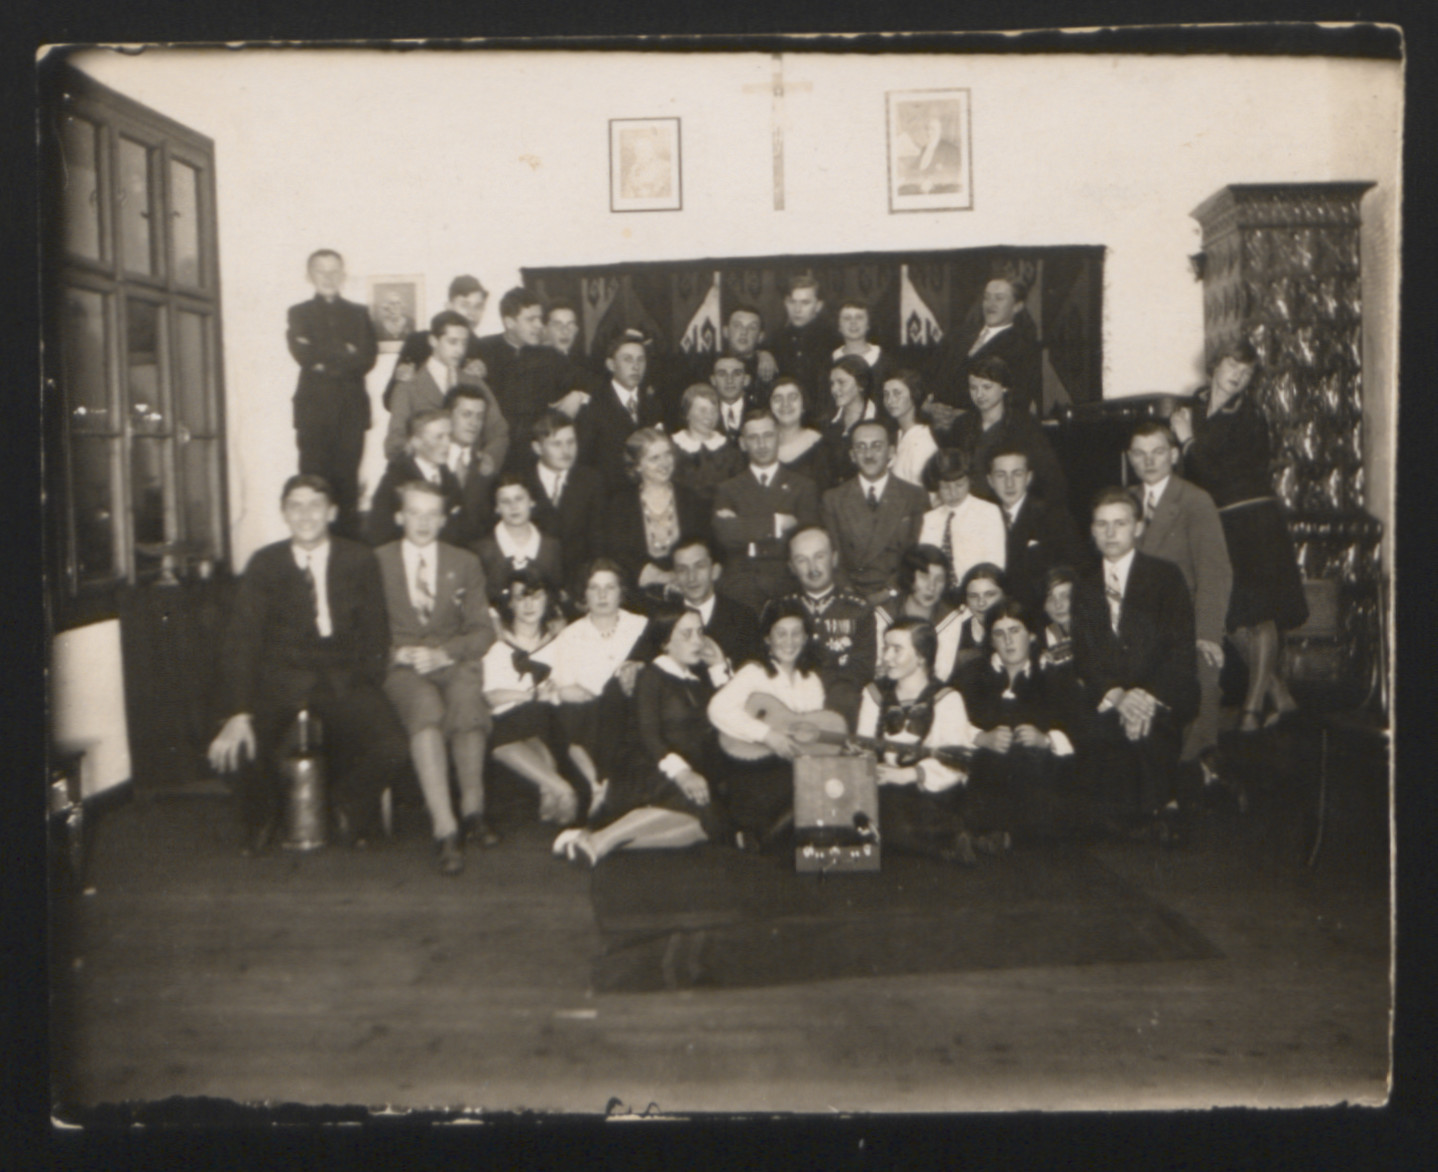 Group portrait of members of a mandolin orchestra in Boryslaw.  Among those pictured is Rozka Pomeranz, donor's aunt (second from the left).